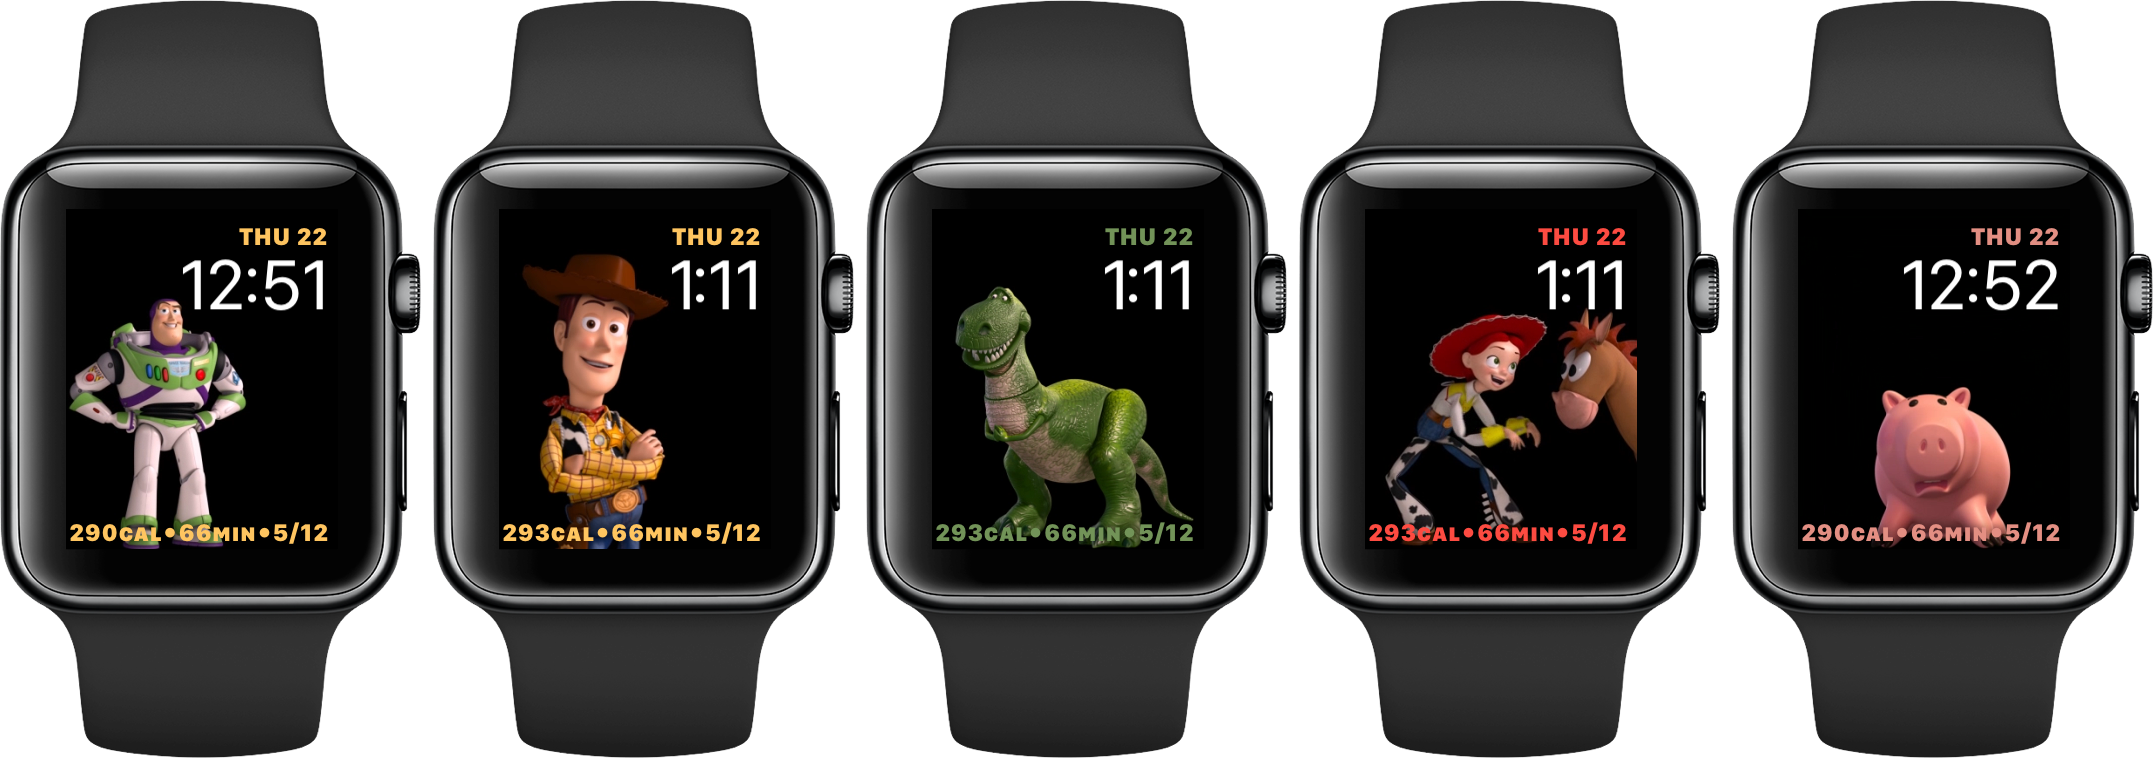 Apple Released the Fourth watchOS 4 Beta